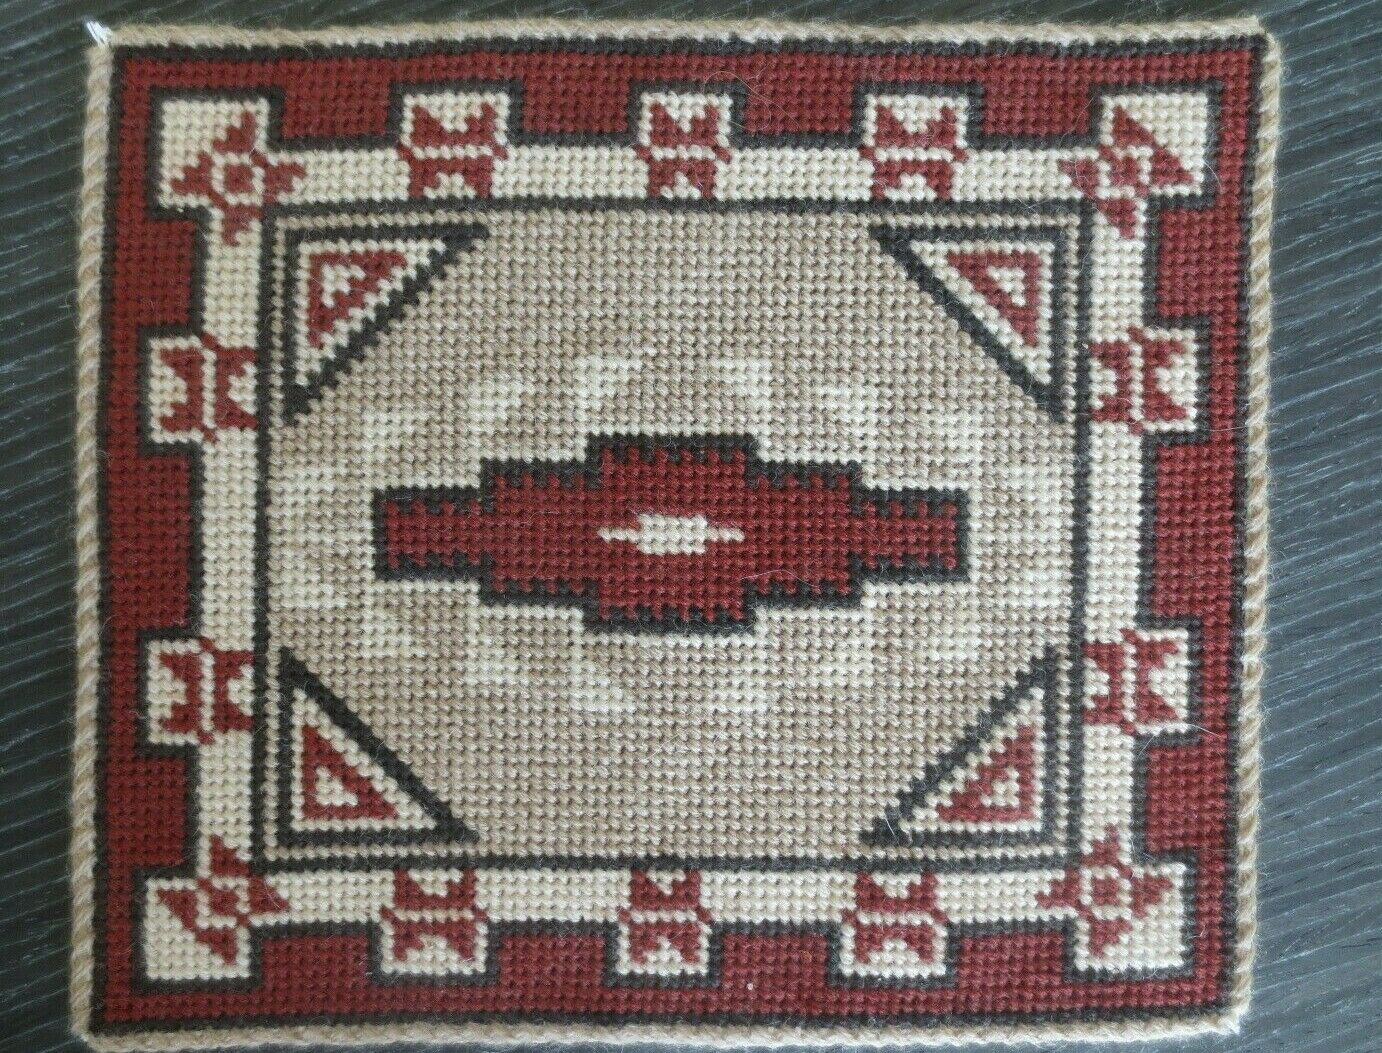 Miniature dollhouse handcrafted needlepoint south western area rug  1 12